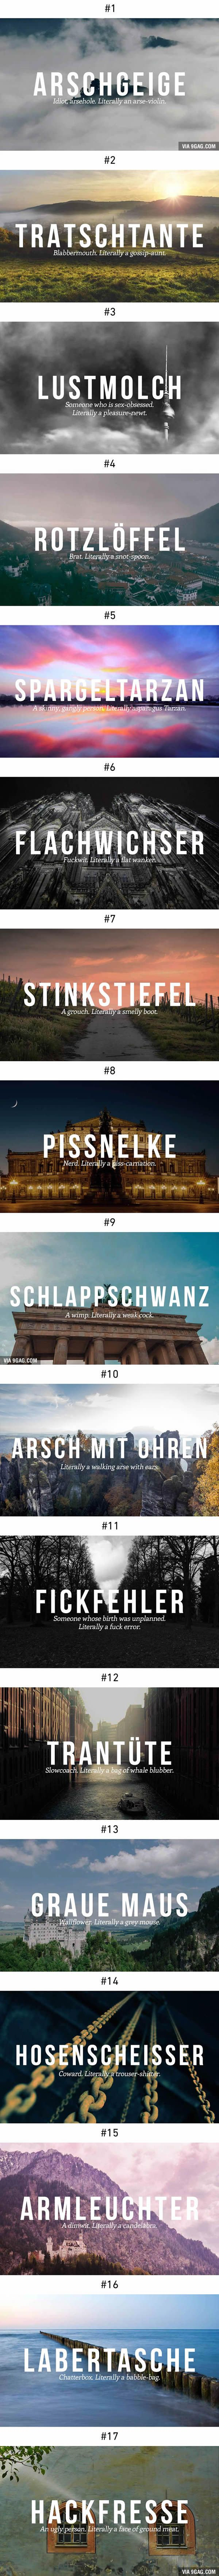 Brilliant German Insults We Need In English - 9GAG